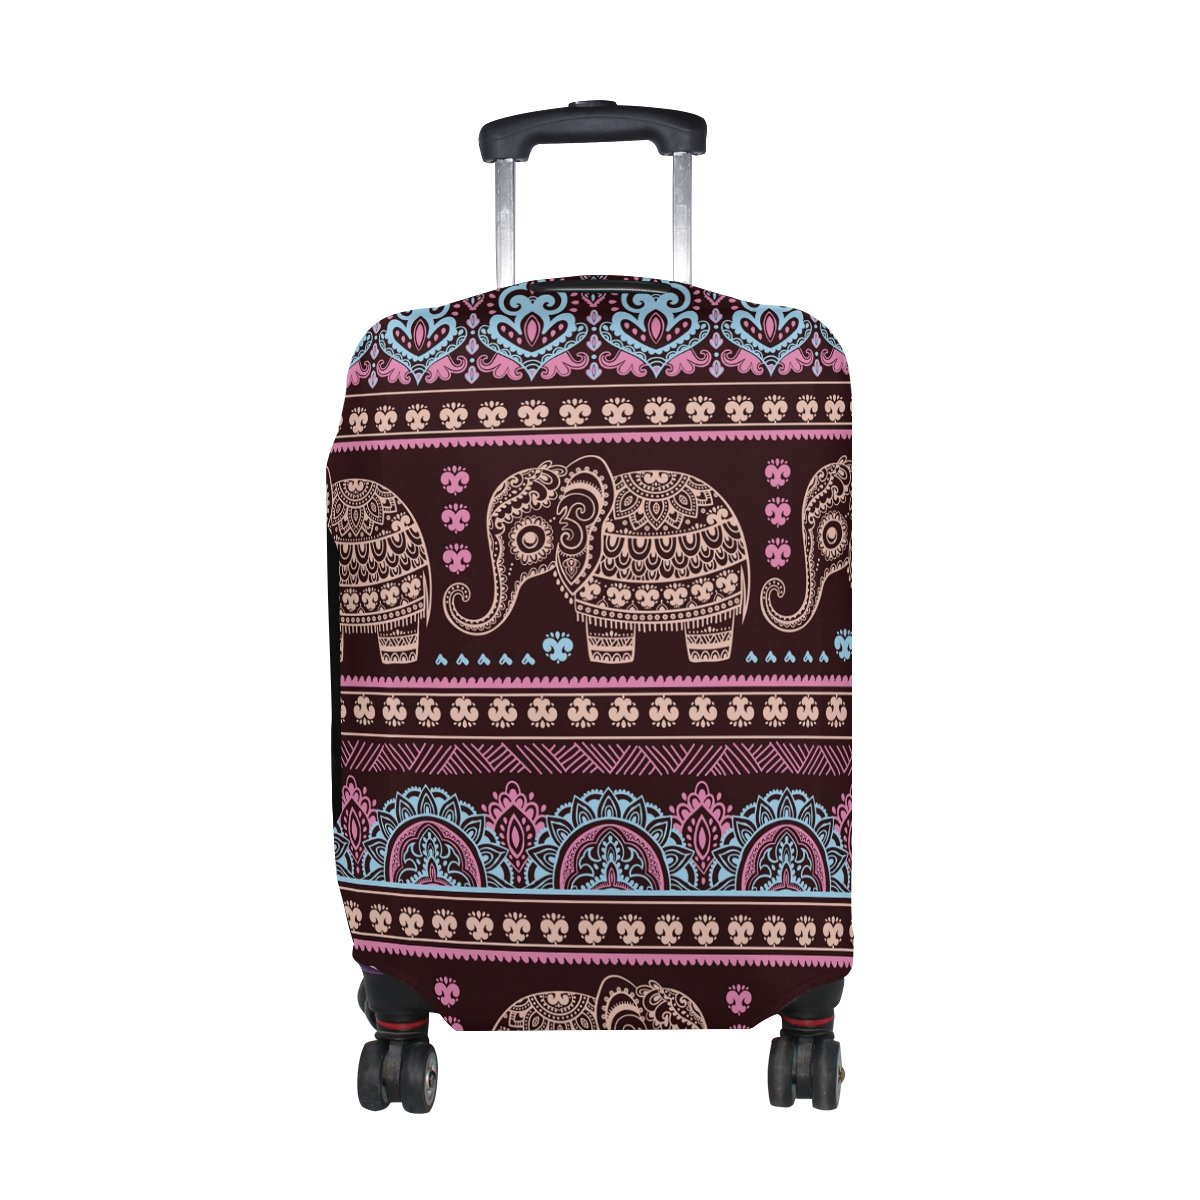 Hippie Indian Elephant Mandala Luggage Cover Travel Suitcase Protector Fits 23-26 Inch Luggage